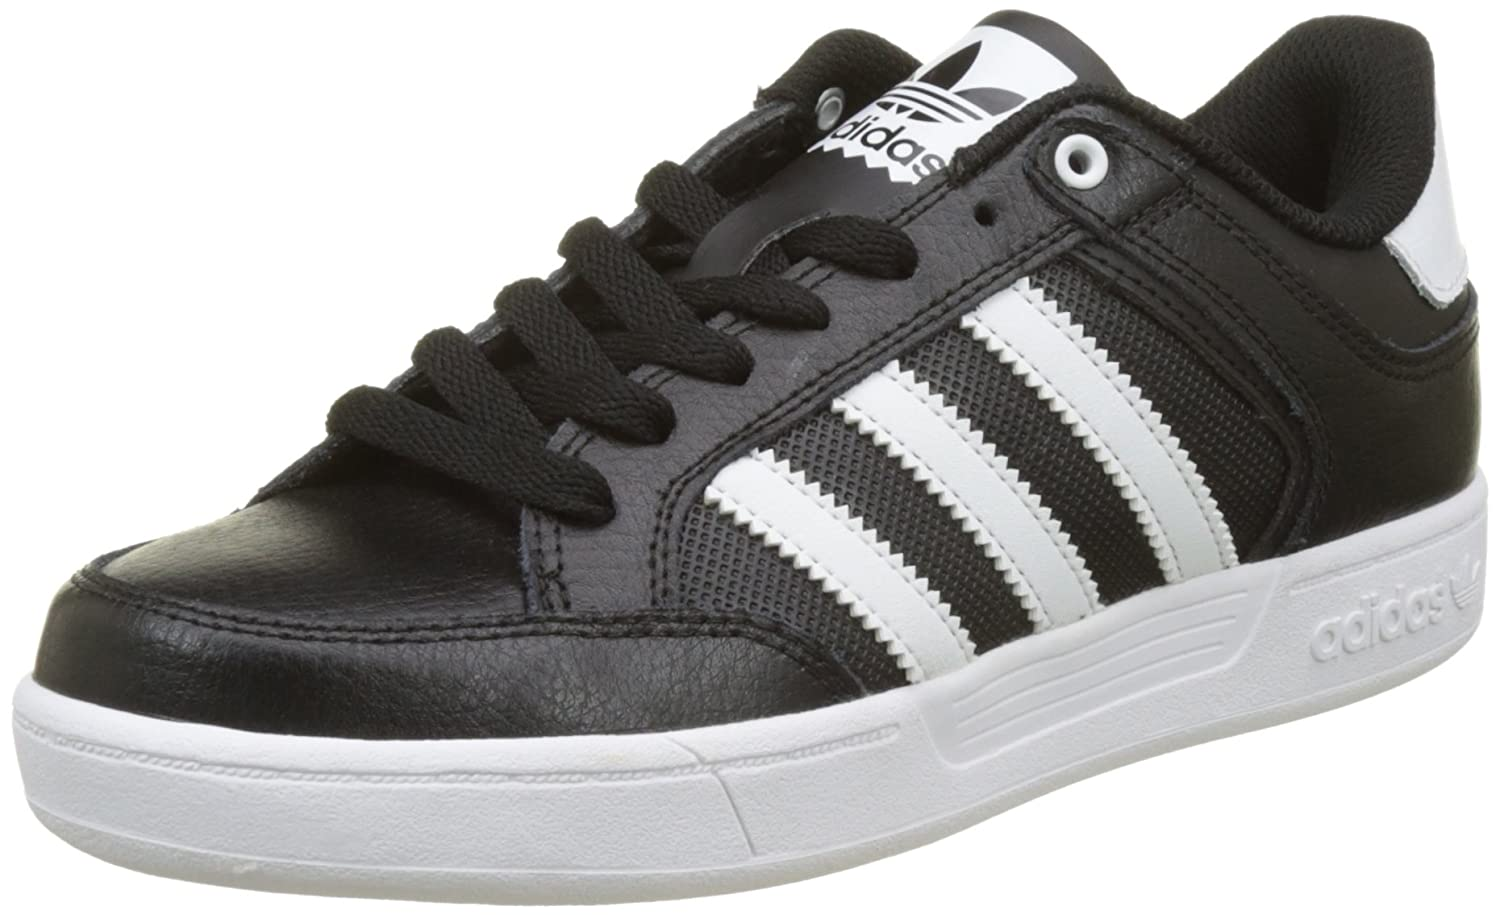 adidas Varial Low, Chaussures de Skateboard Mixte Adulte BY4055